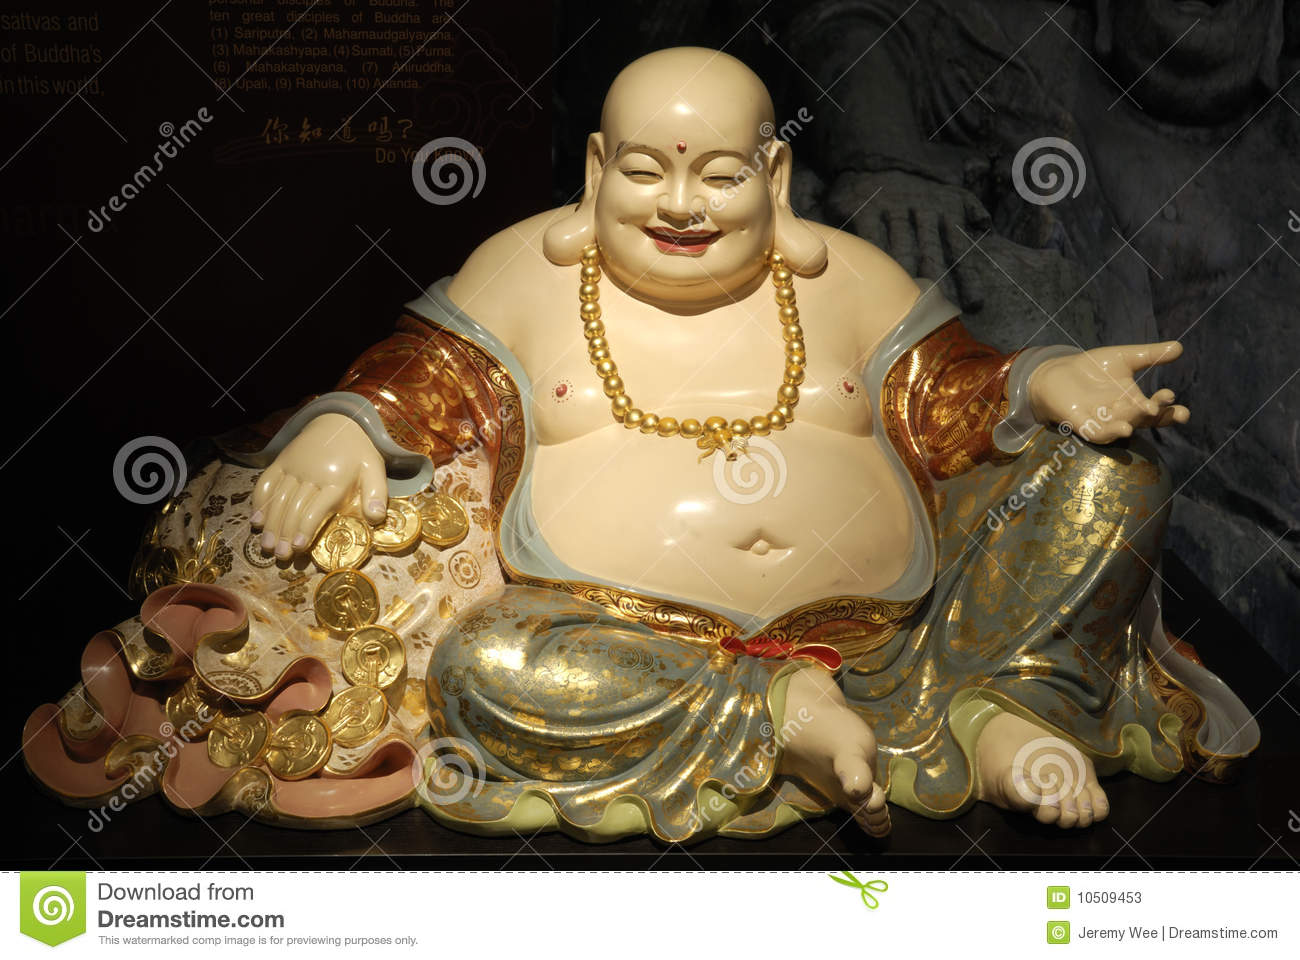 1 643 Laughing Buddha Photos Free Royalty Free Stock Photos From Dreamstime